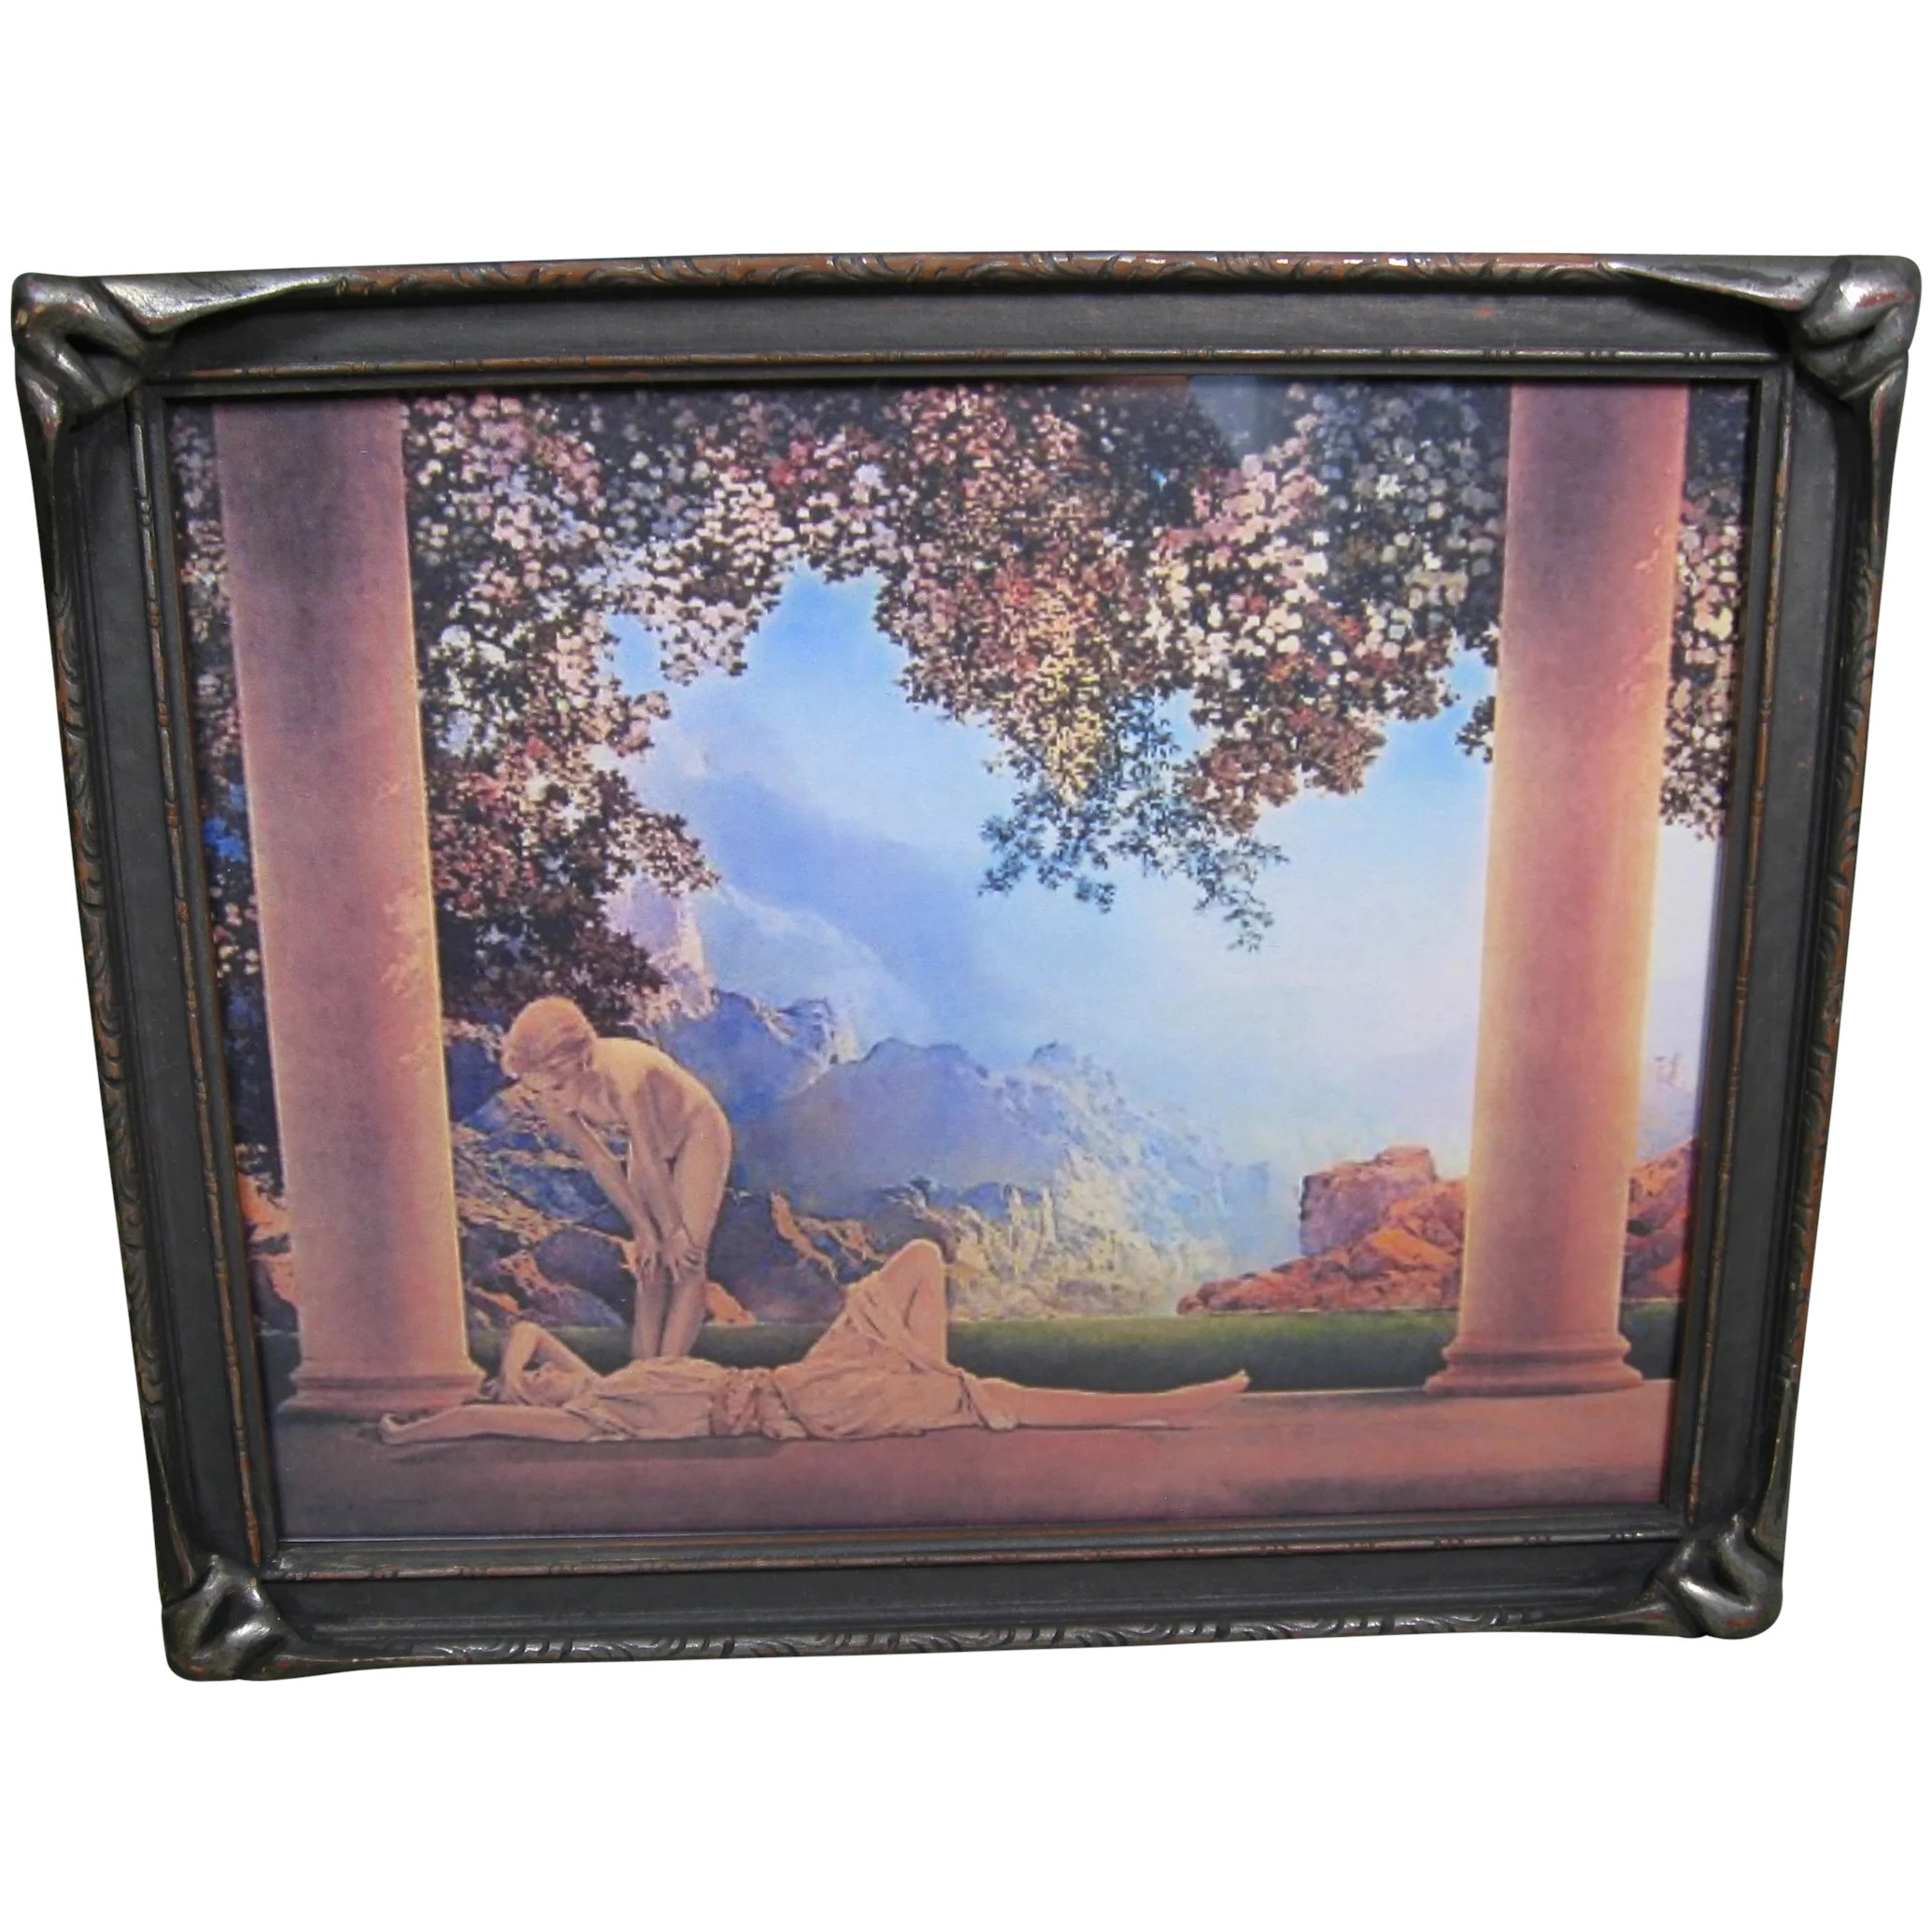 Circa 1920s Batwing Picture Frame, 10 3/4 x 9 inches